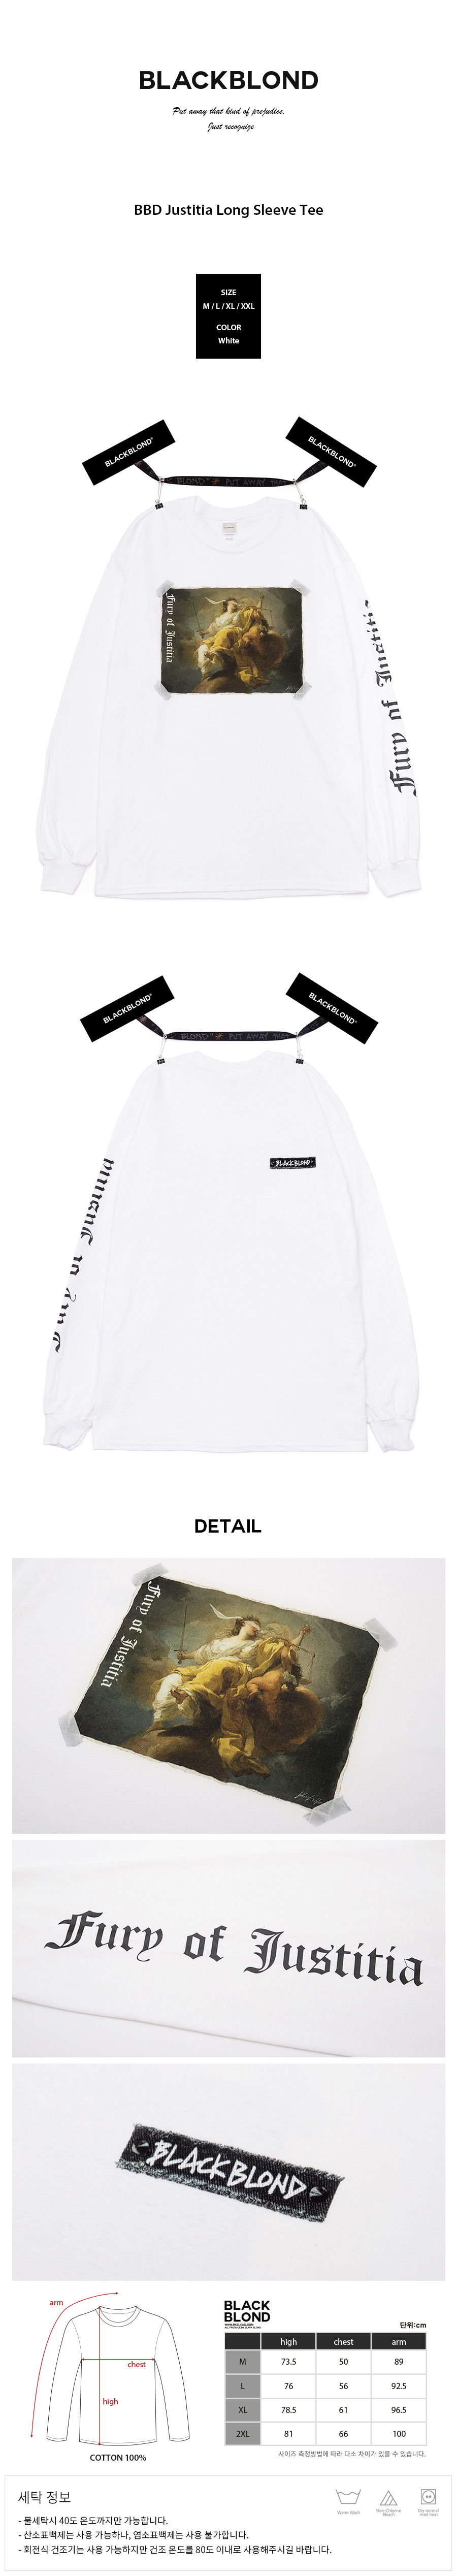 BBD-Justitia-Long-Sleeve-Tee-%28White%29.jpg